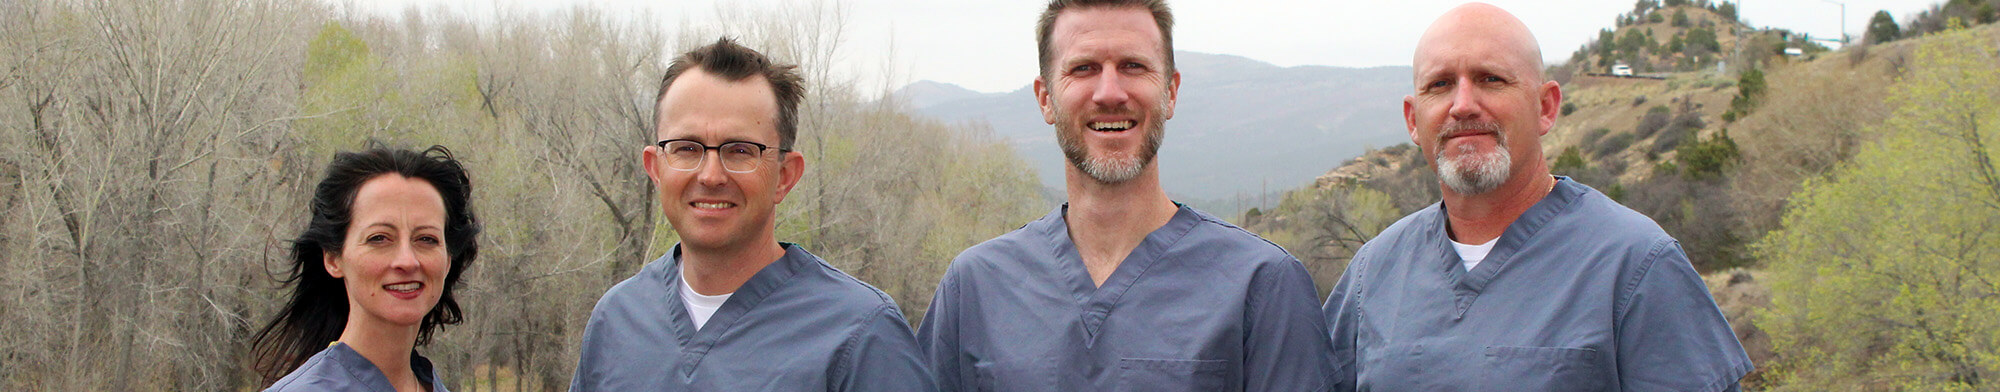 Animas Surgical Hospital - Orthopedic Surgery Durango, CO